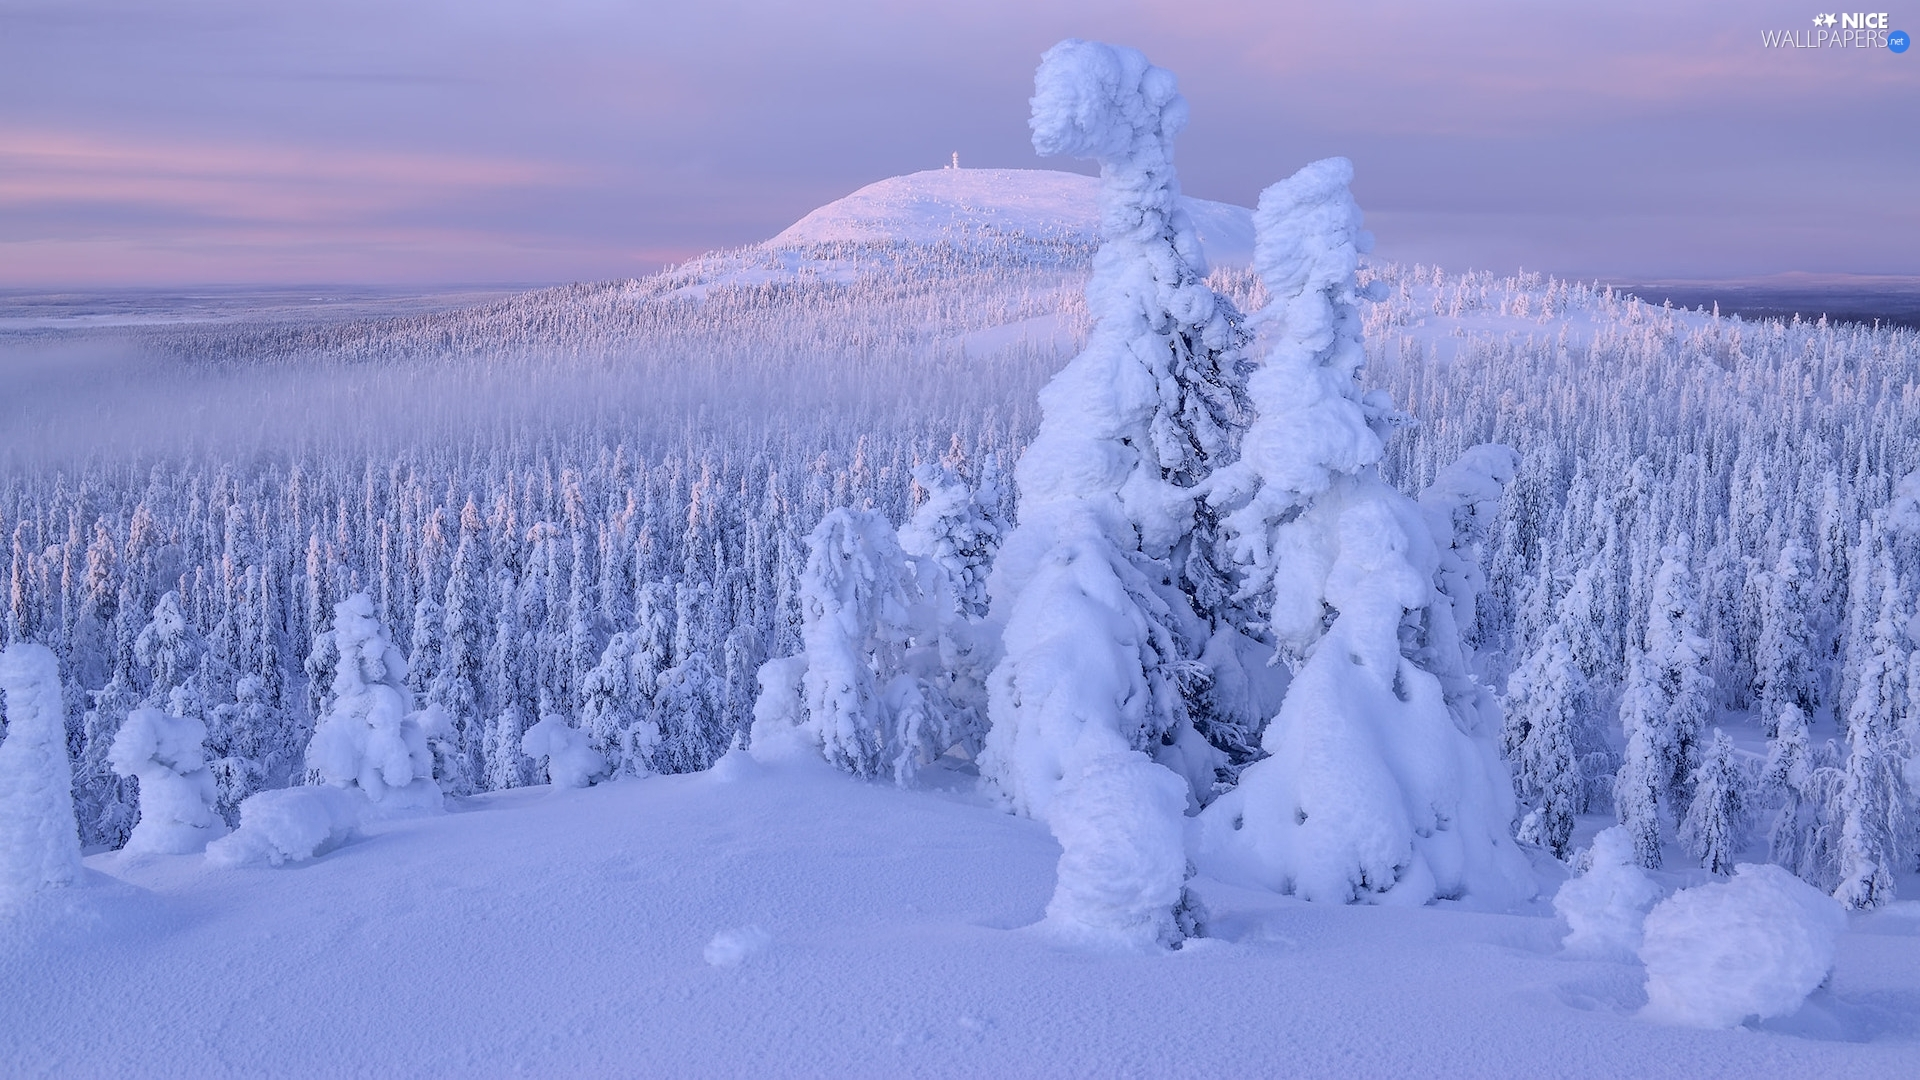 viewes, Snowy, drifts, trees, winter, Spruces, Hill